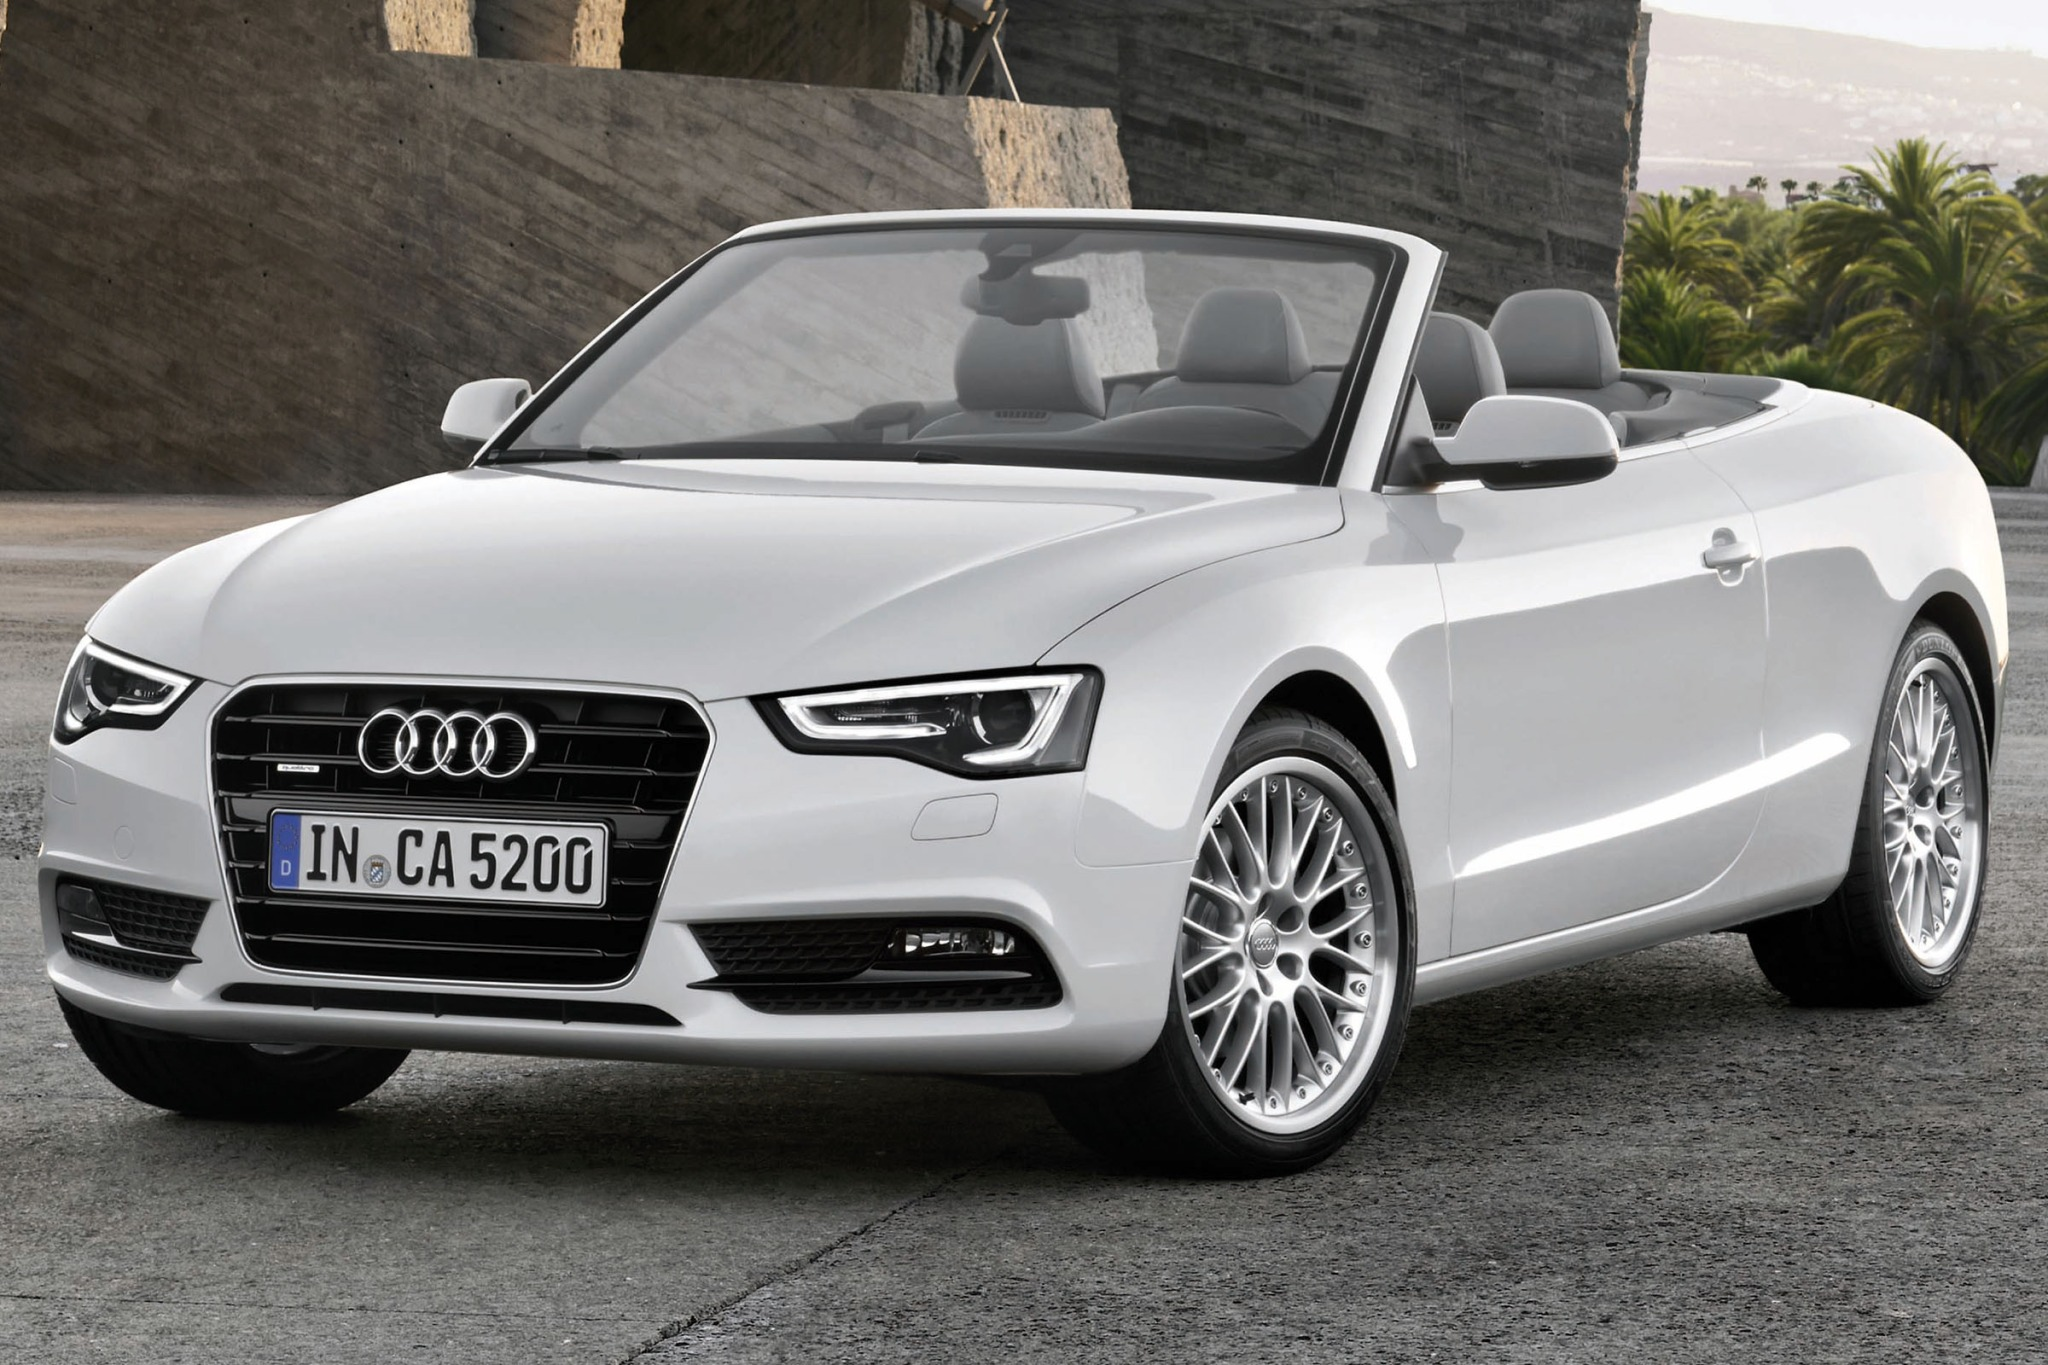 cars cabriolet uk the new audi convertible side